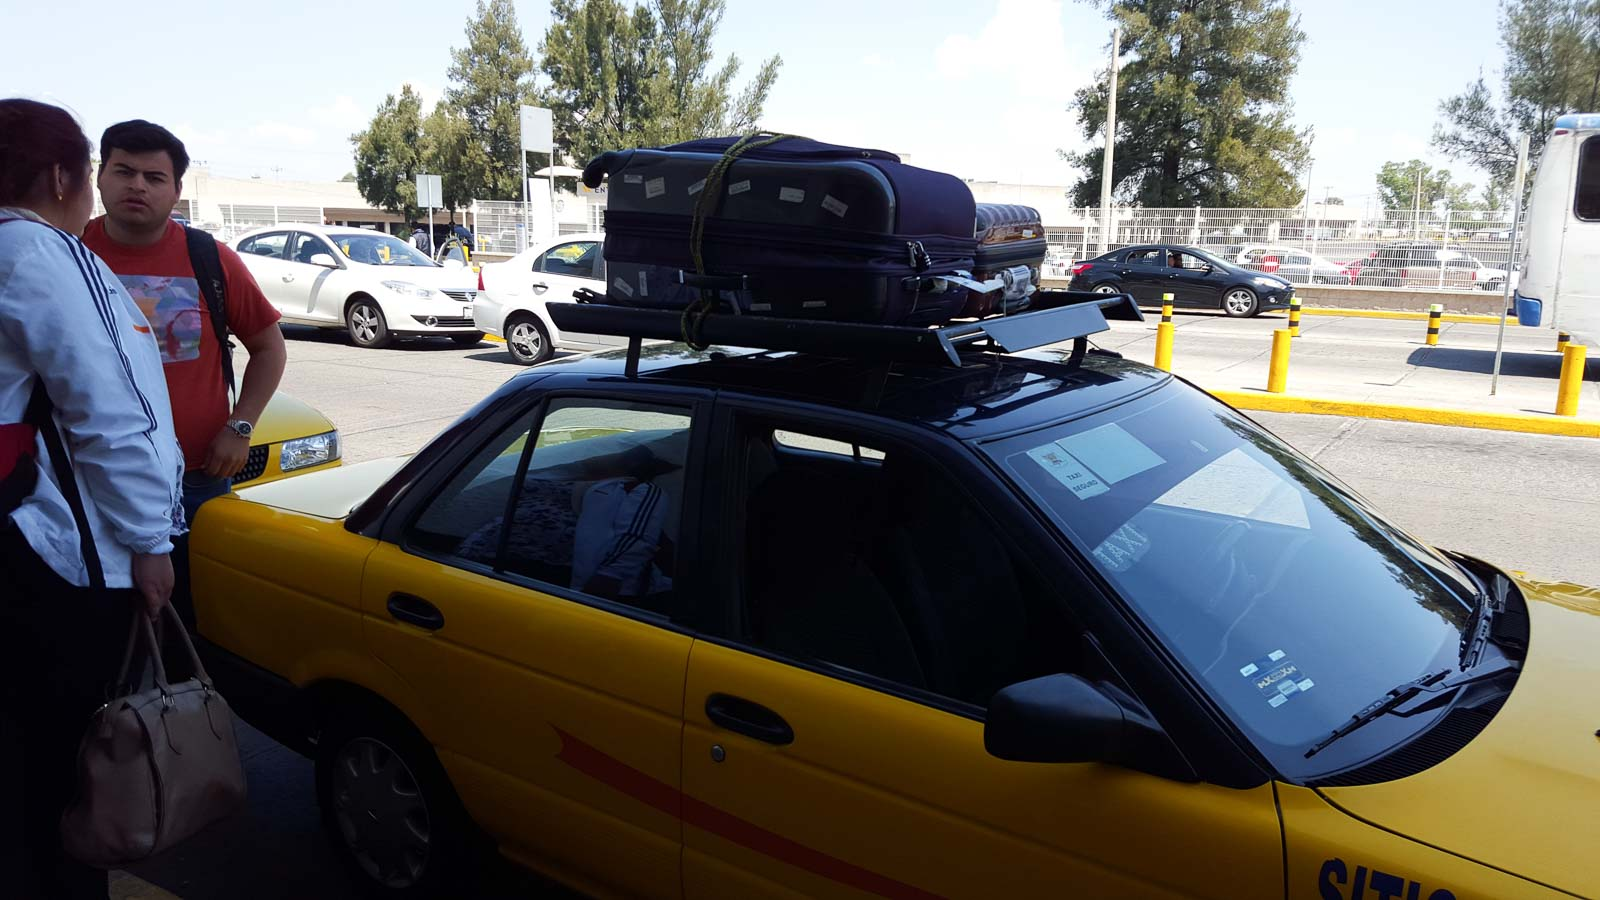 Catching a taxi in Mexico with suitcases on the roof